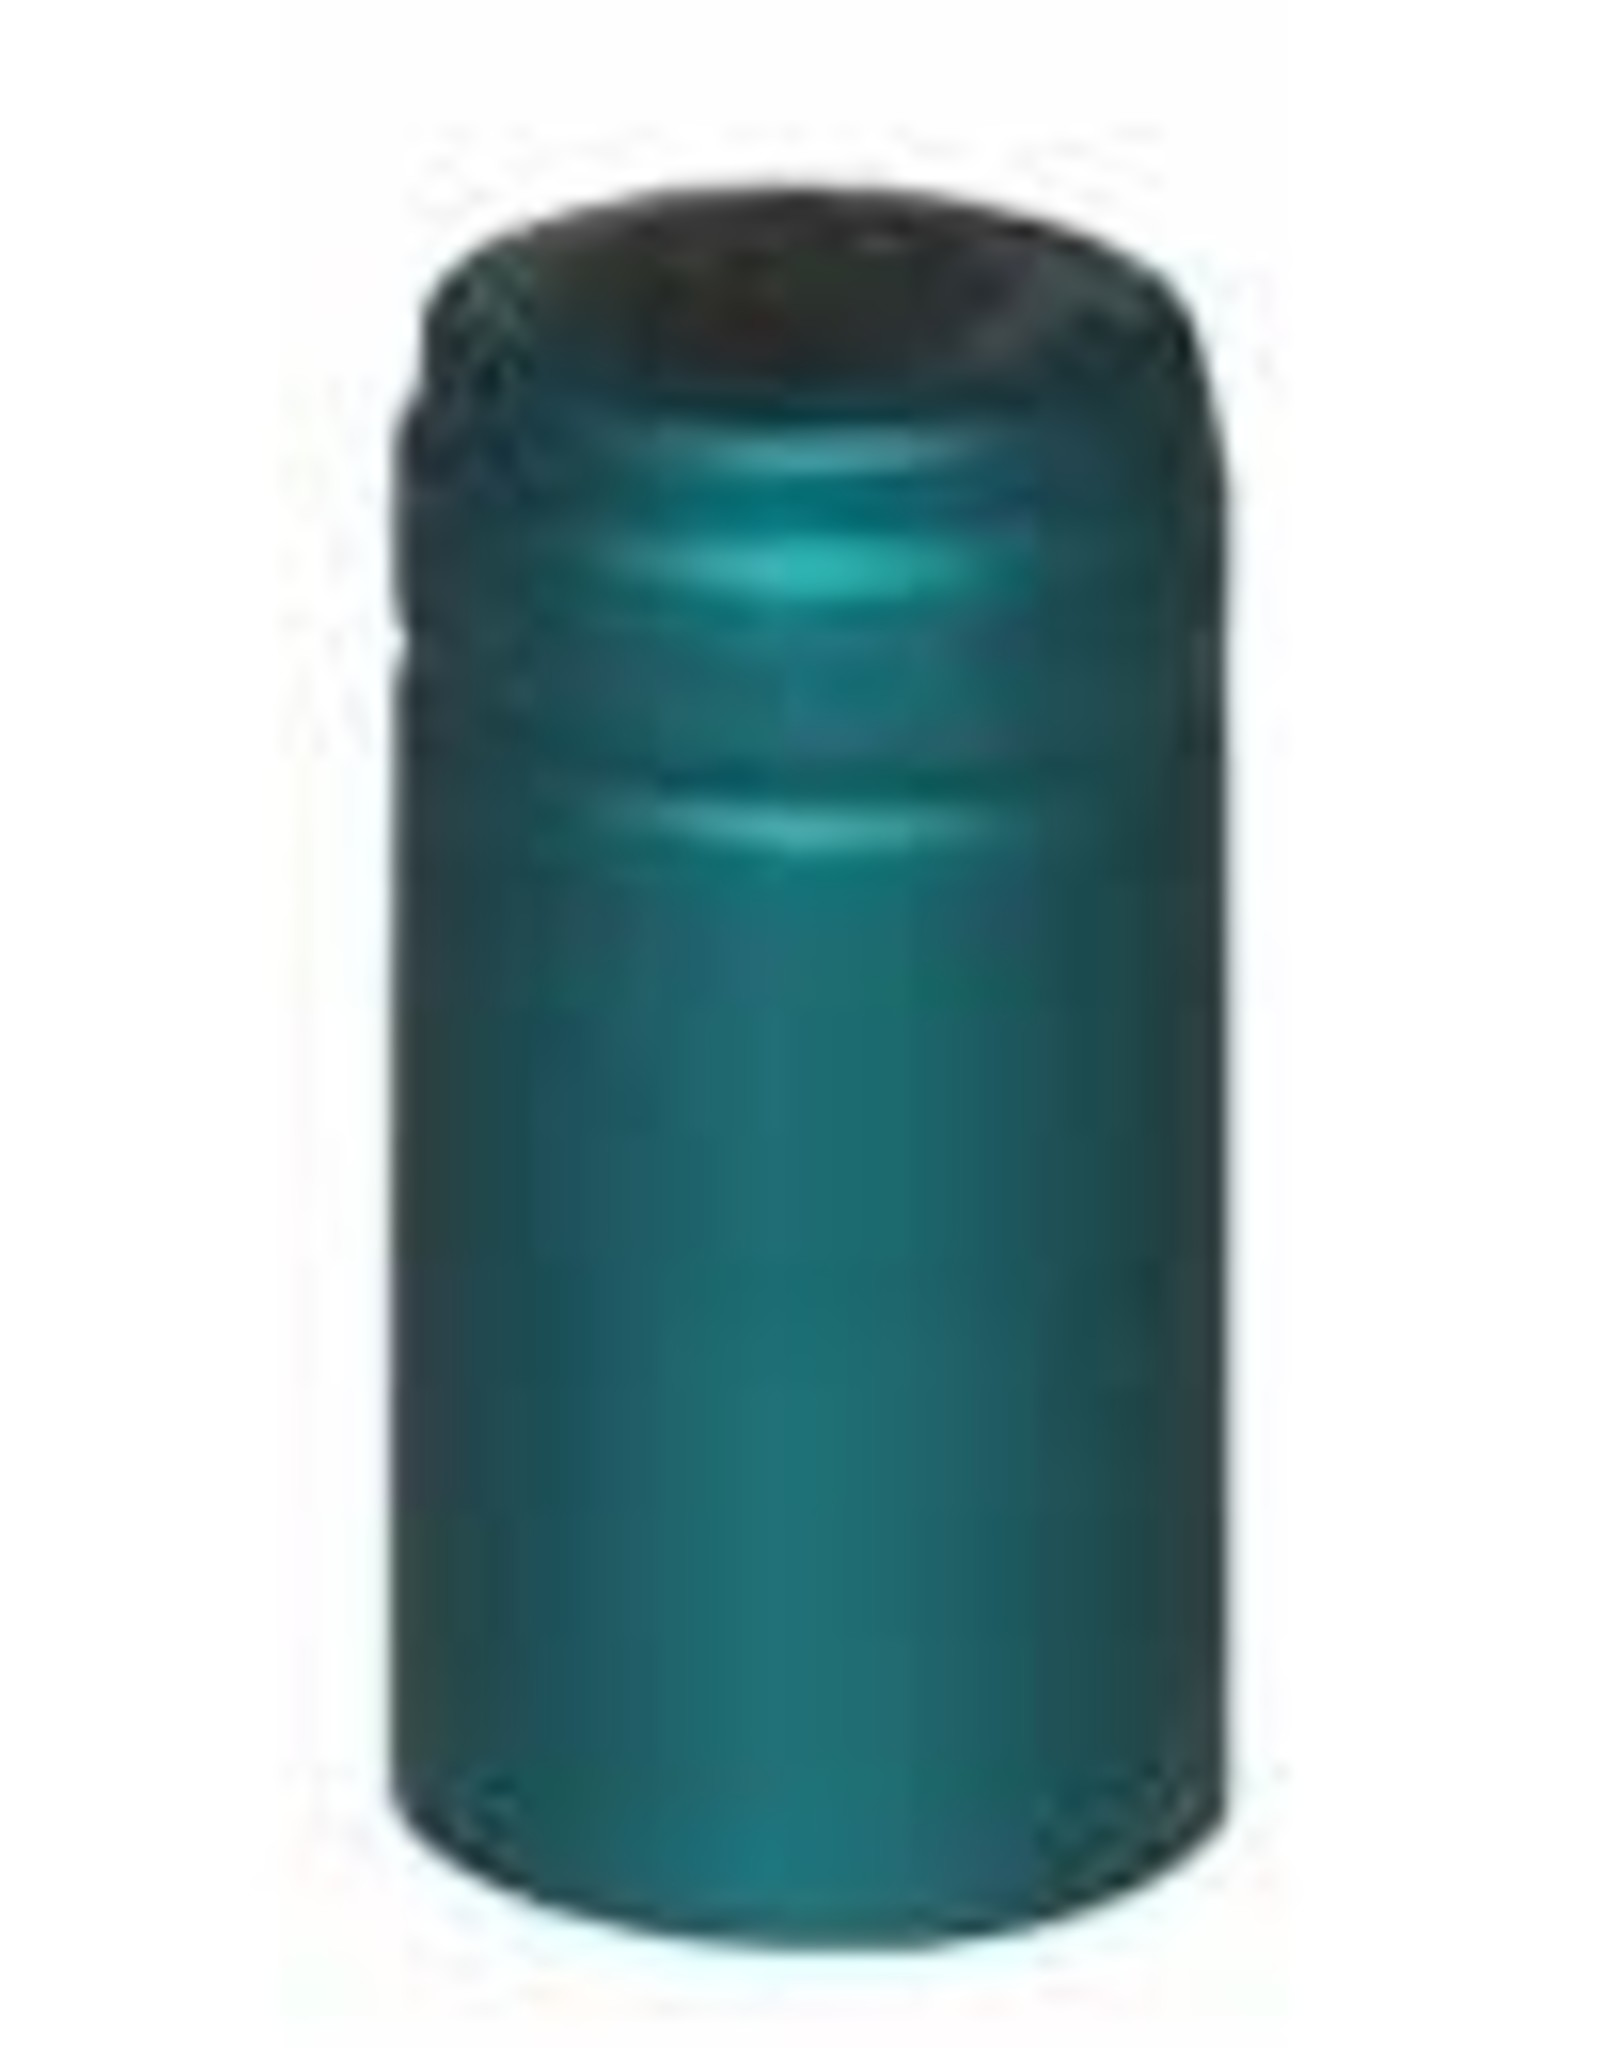 TURQUOISE PVC SHRINK CAPSULES 30 COUNT